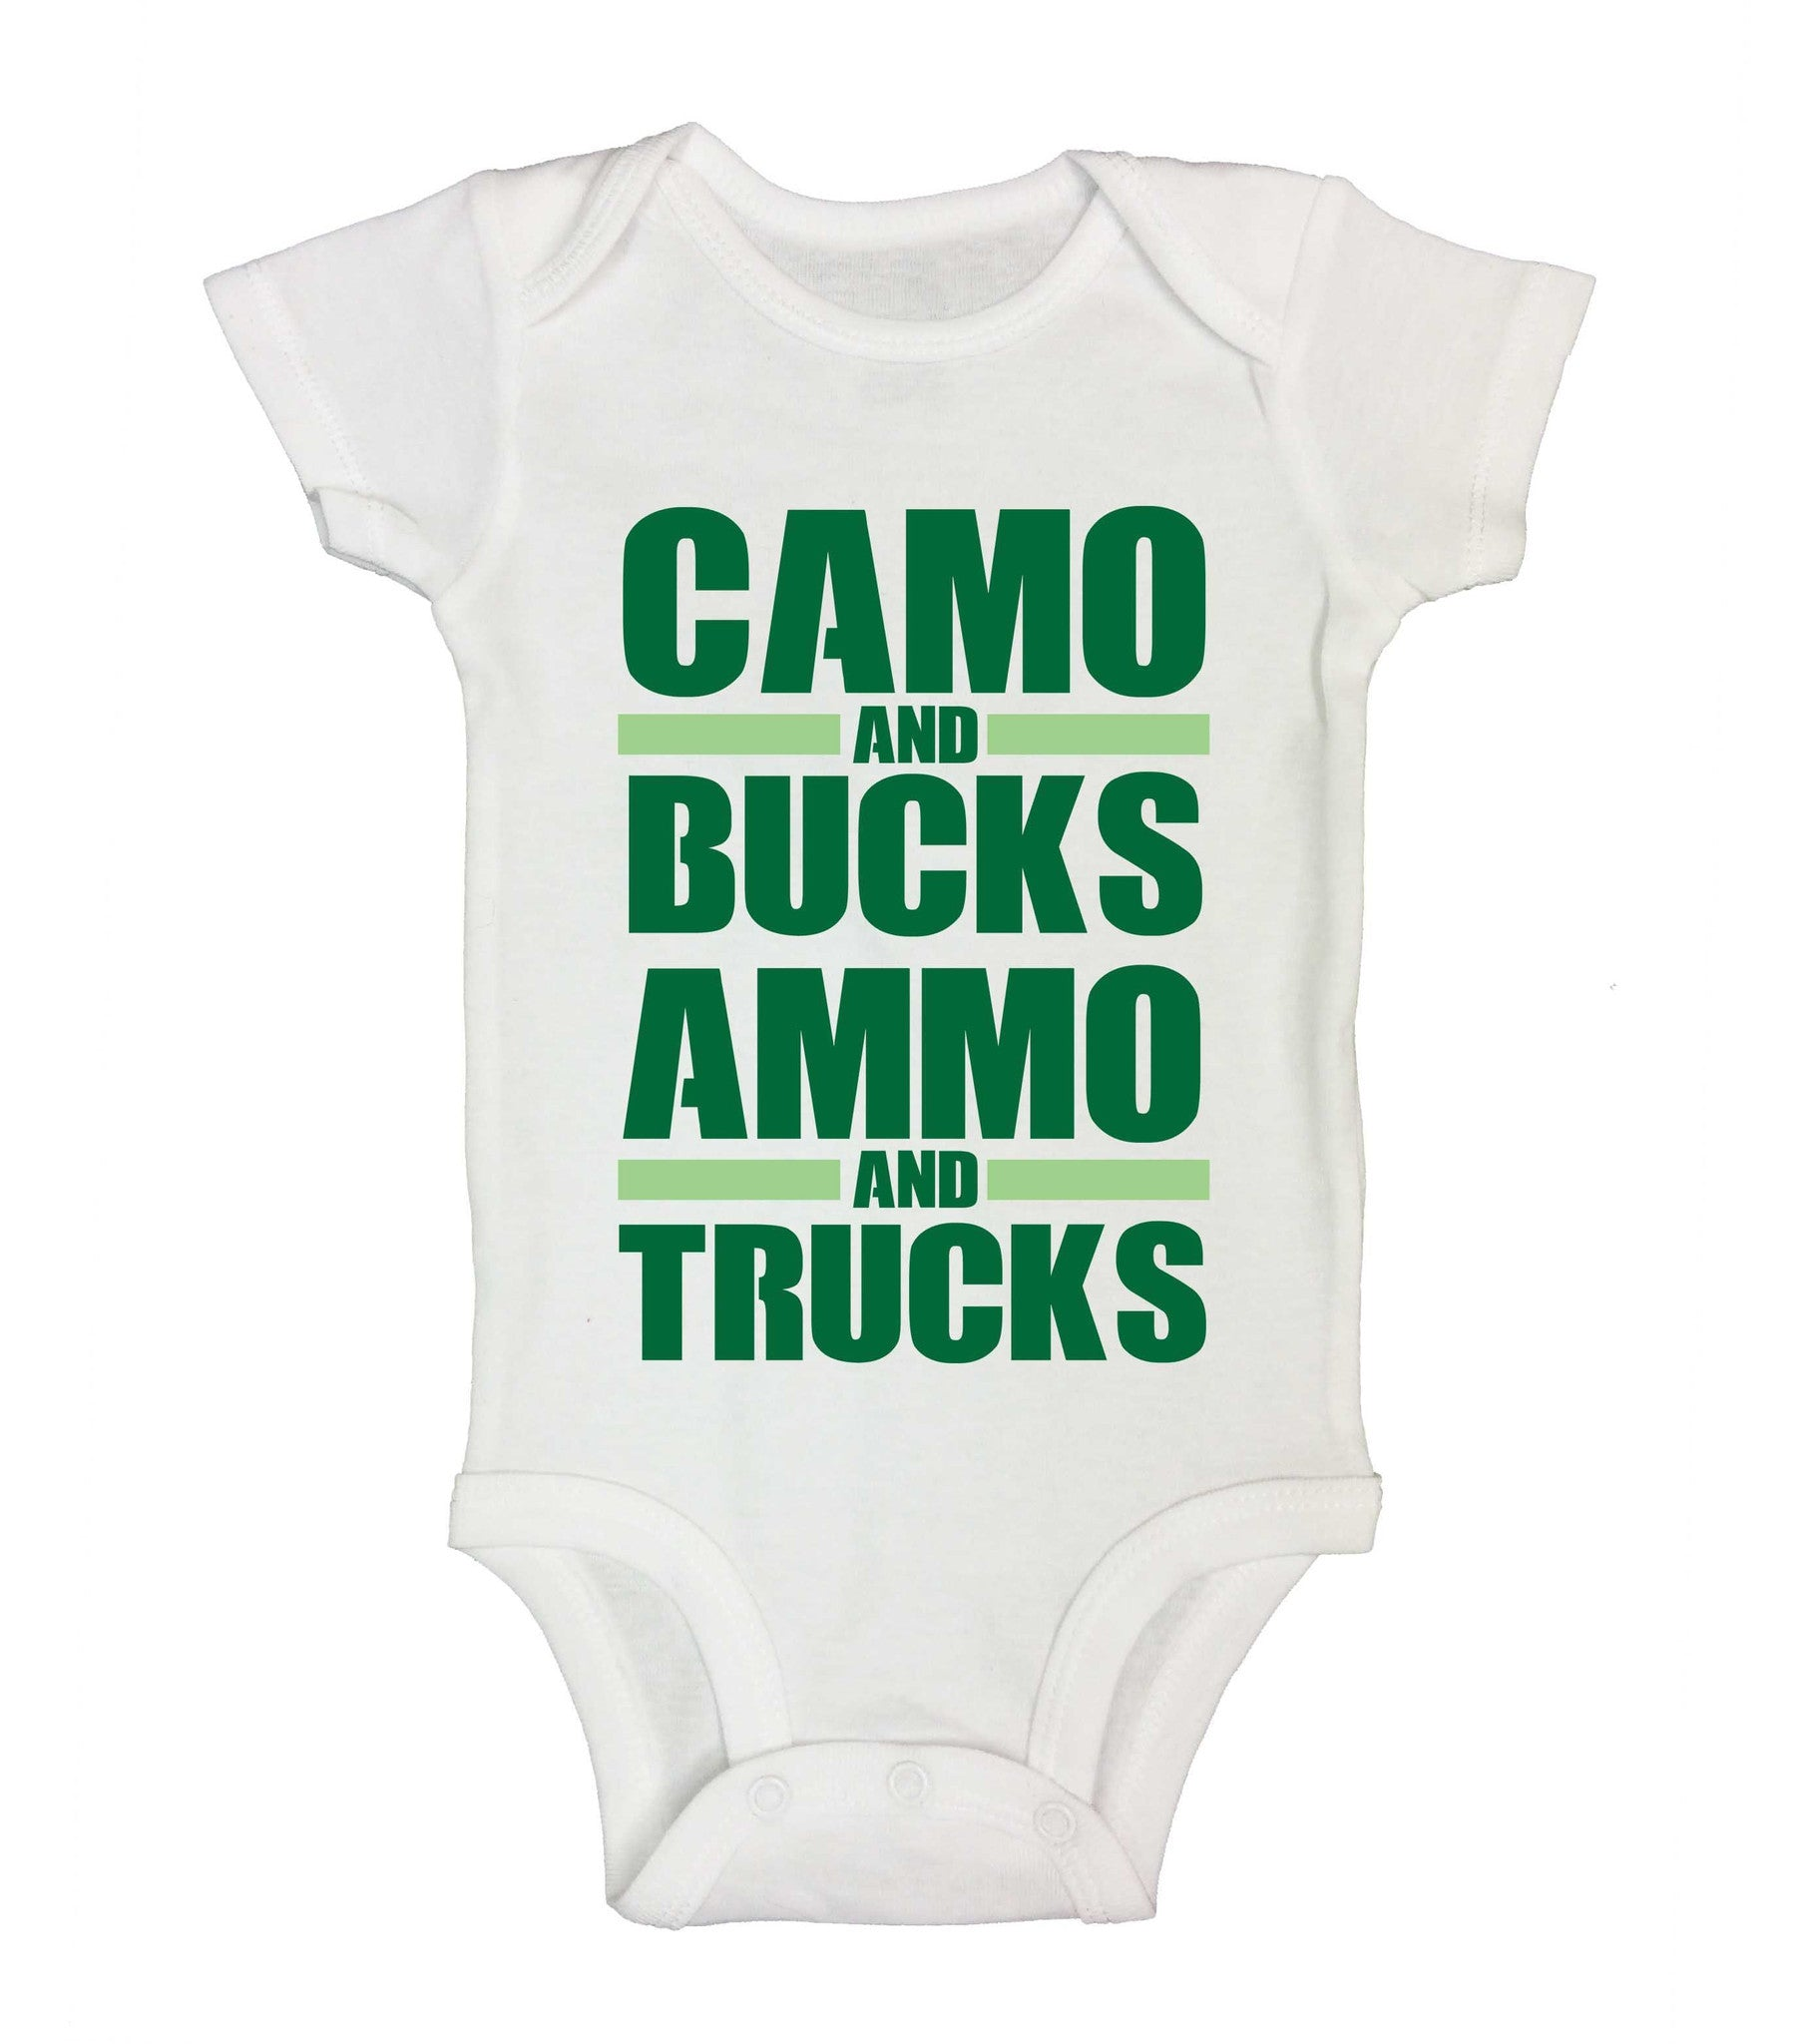 Camo And Bucks Ammo And Trucks Funny Kids Onesie - 230 - Funny Shirts Tank Tops Burnouts and Triblends  - 2